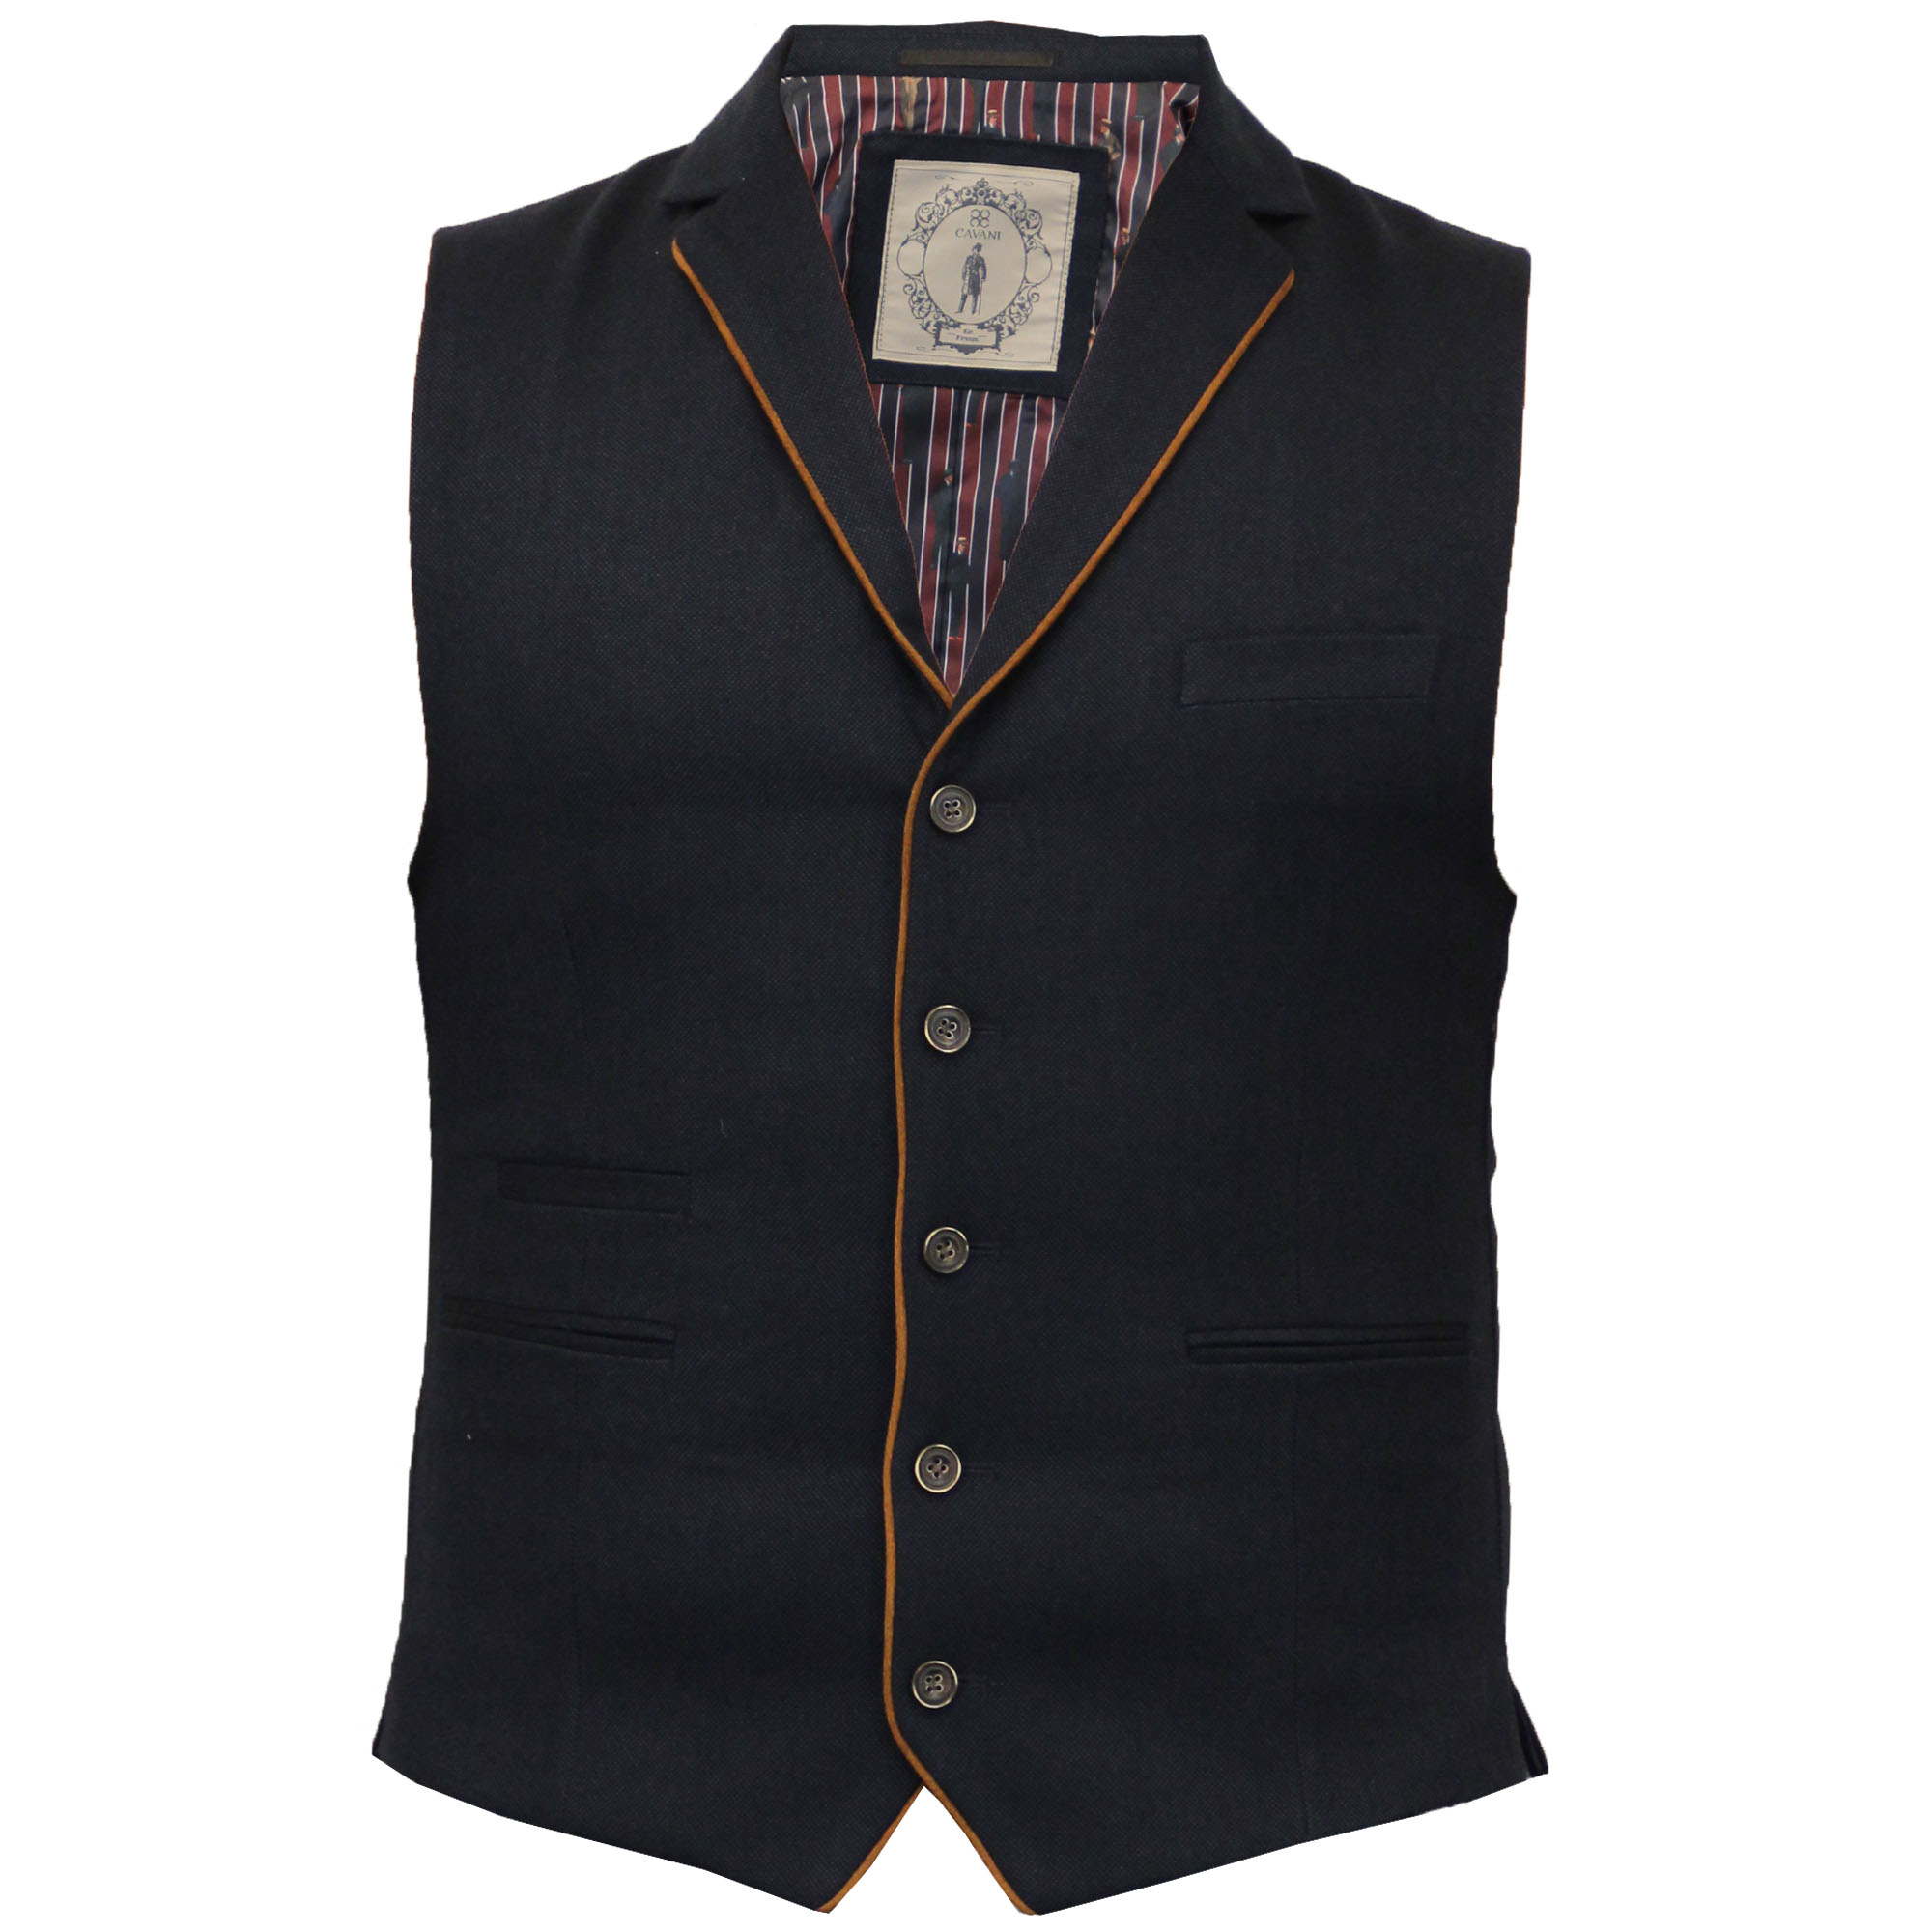 homme gilet cavani formel herringbone tweed carreaux gilet sans manche mariage neuf ebay. Black Bedroom Furniture Sets. Home Design Ideas